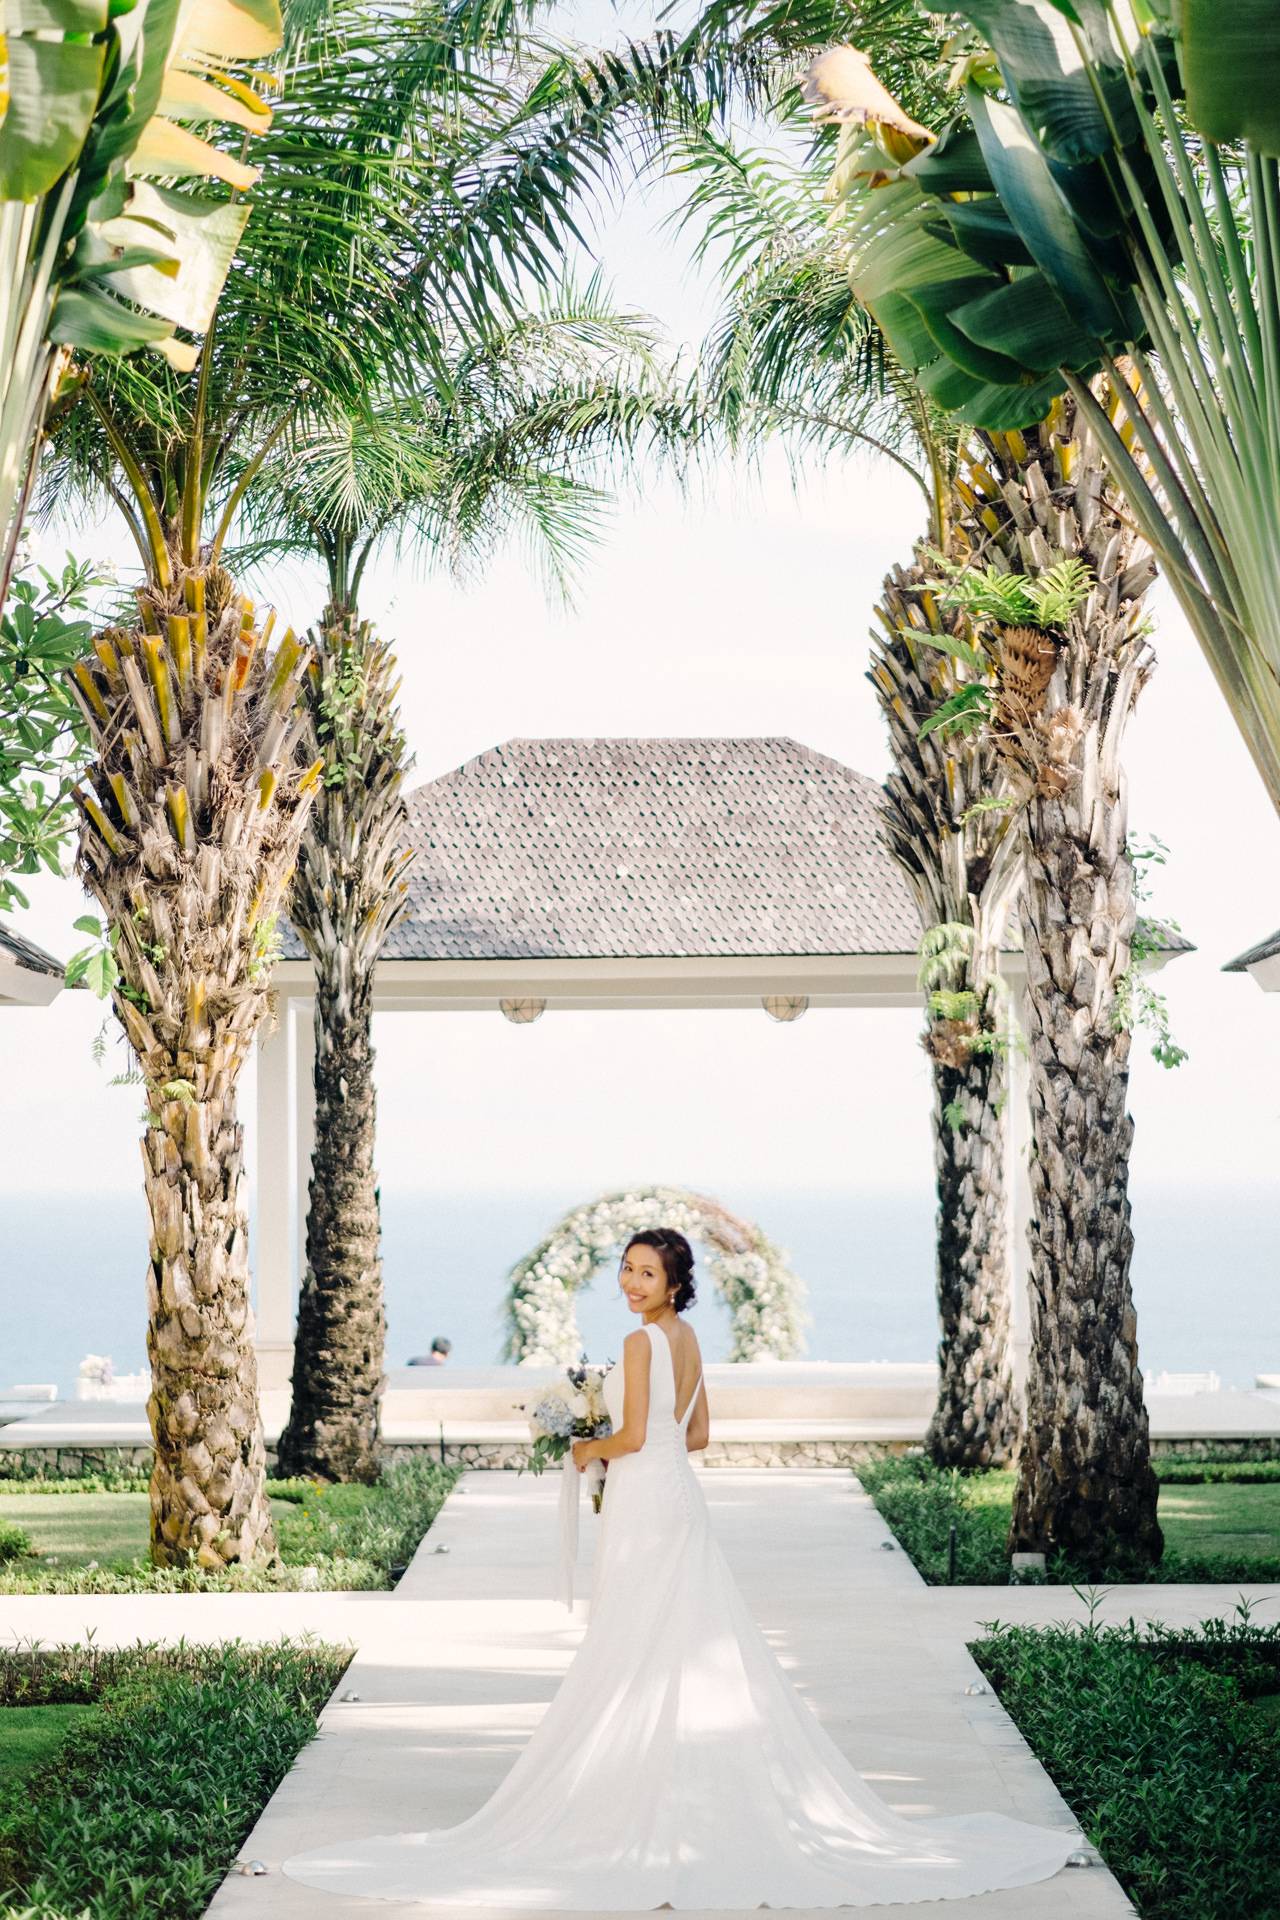 G&J: Breathtaking Bali Wedding at The Ungasan Clifftop Resort, Uluwatu 21